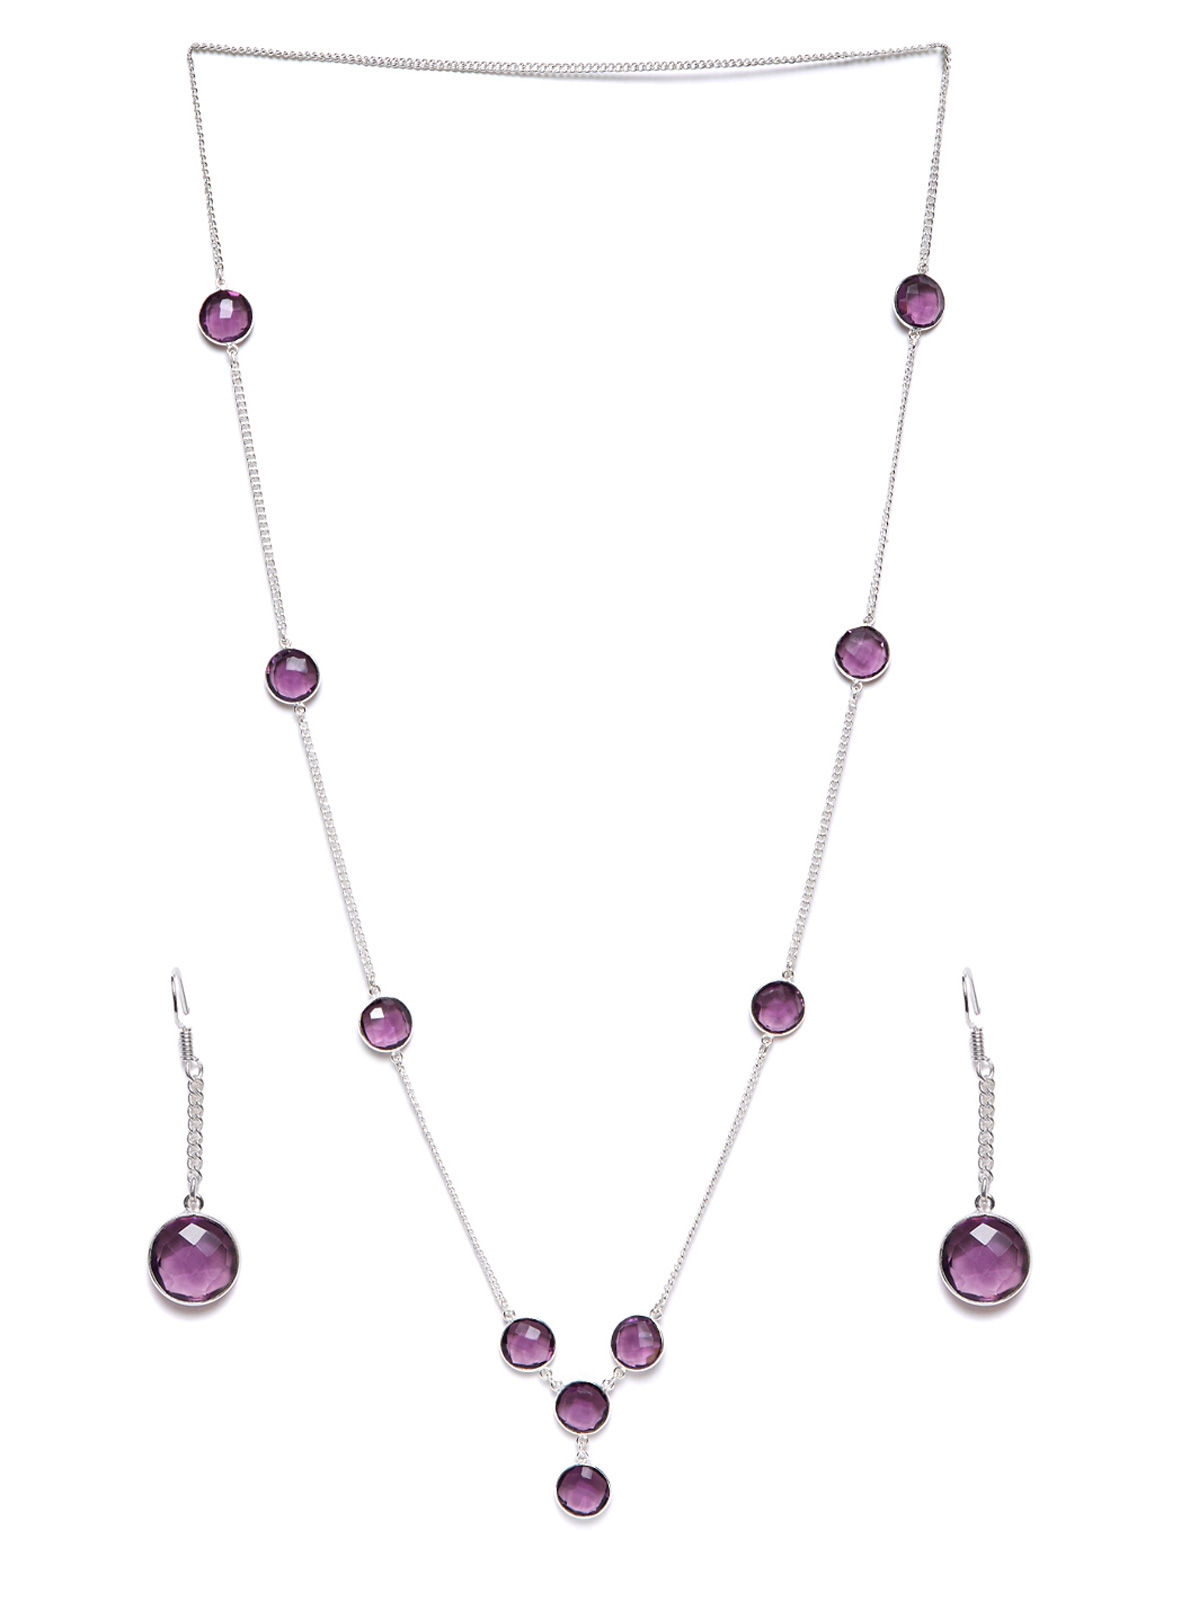 Imli Street purple silver tone brass neckpiece and earrings set